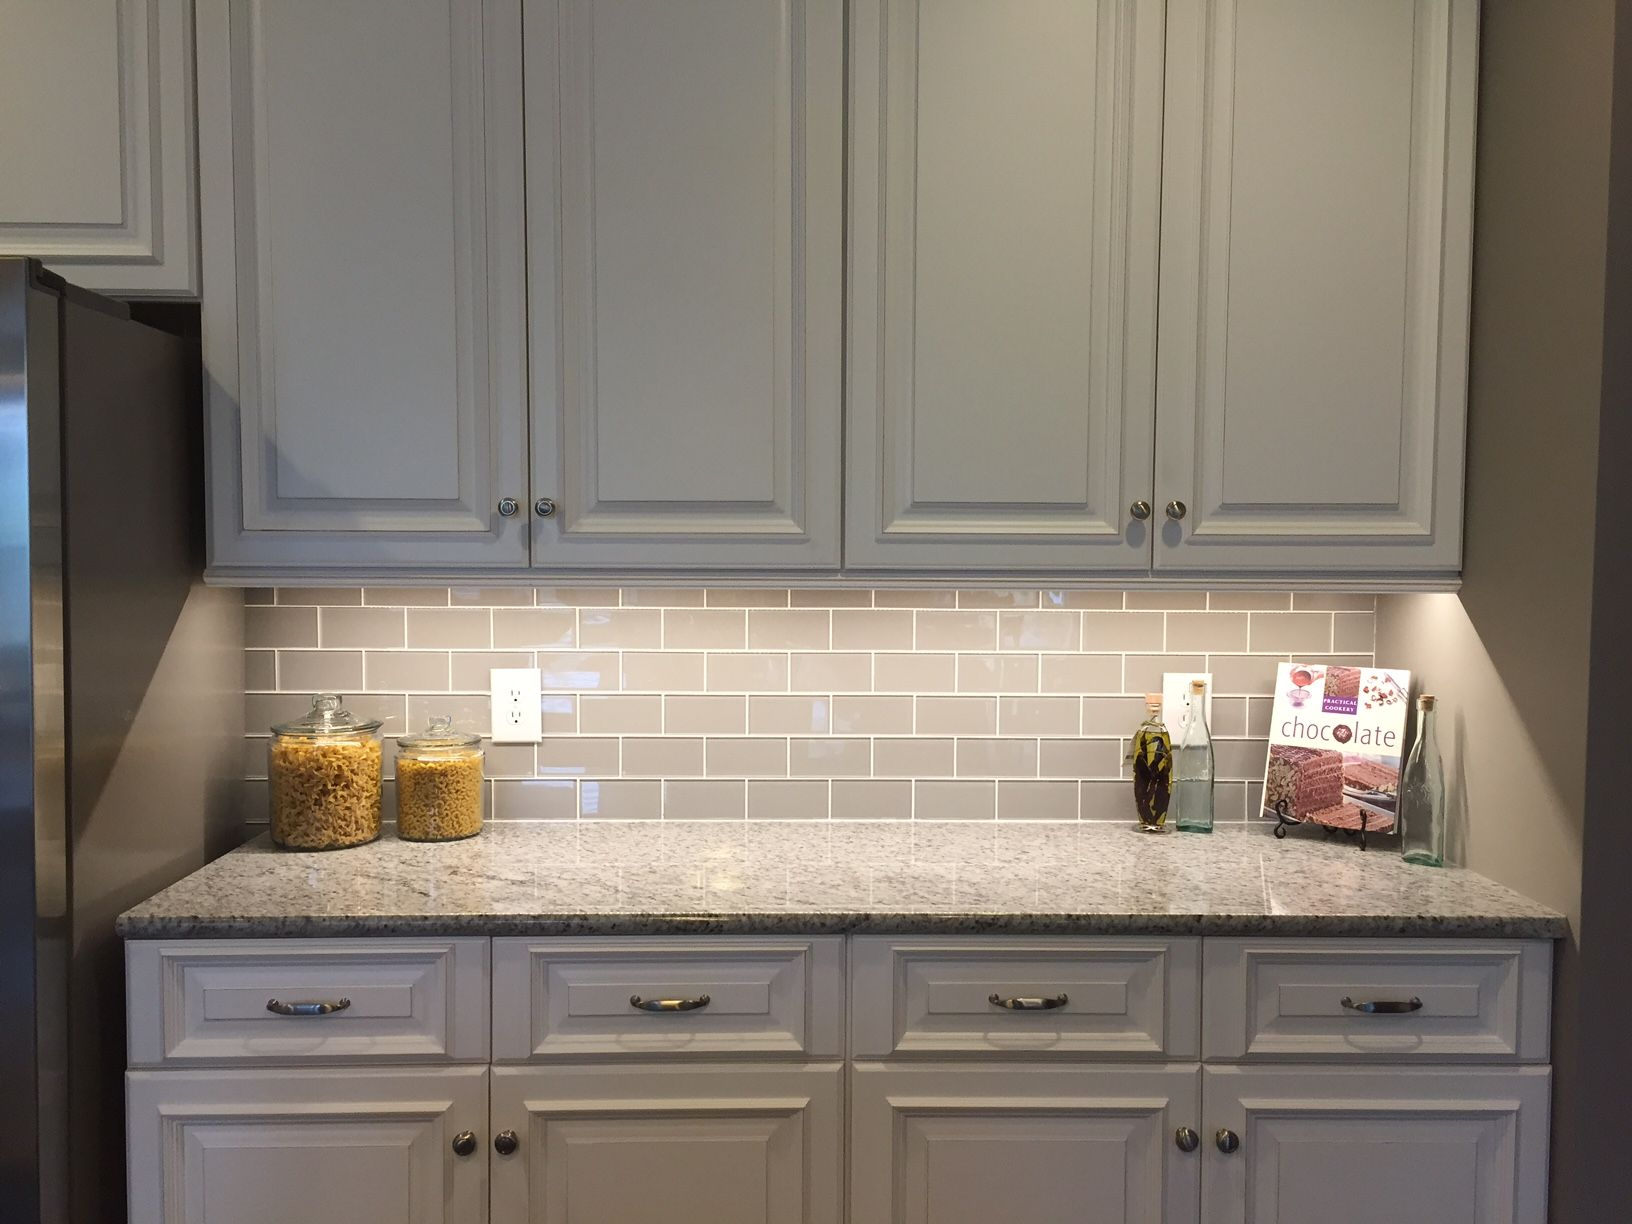 Gray Ceramic Tile Backsplash Smoke Glass Subway Tile Backsplashes Glass Subway Tile